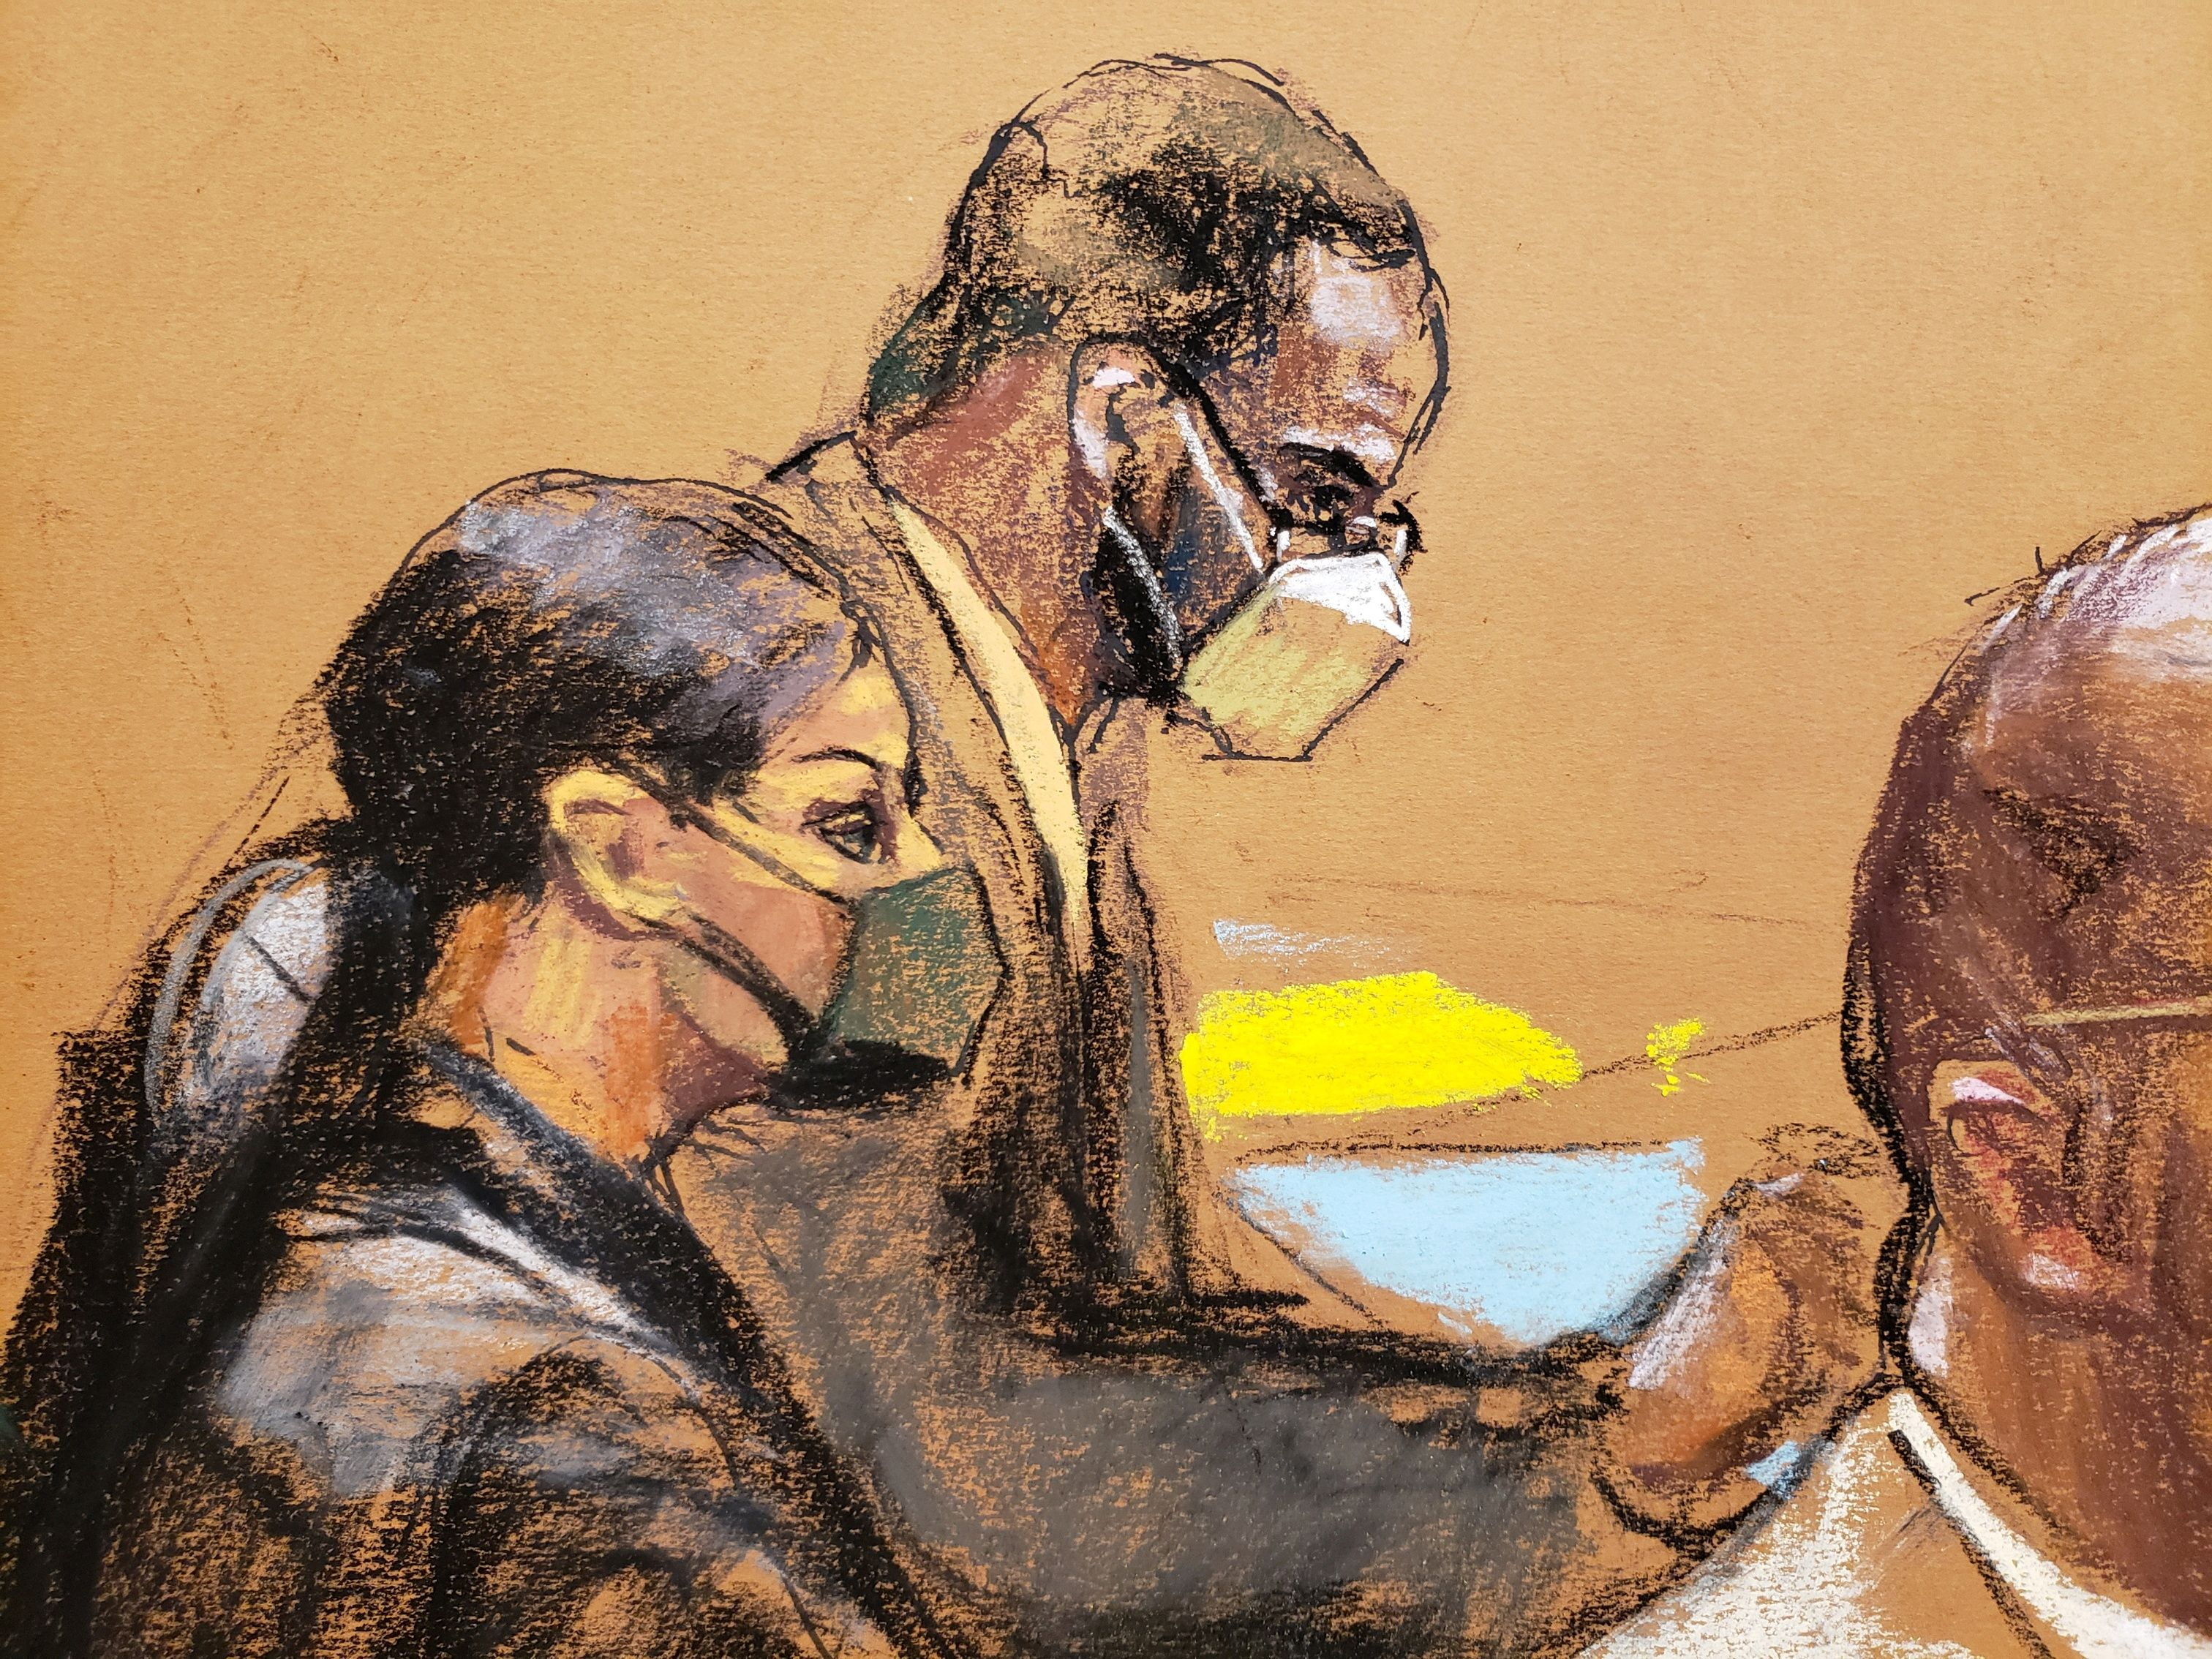 R. Kelly sits near his lawyer Nicole Blank Becker during Kelly's sex abuse trial at Brooklyn's Federal District Court in New York, U.S., August 25, 2021 in a courtroom sketch. REUTERS/Jane Rosenberg